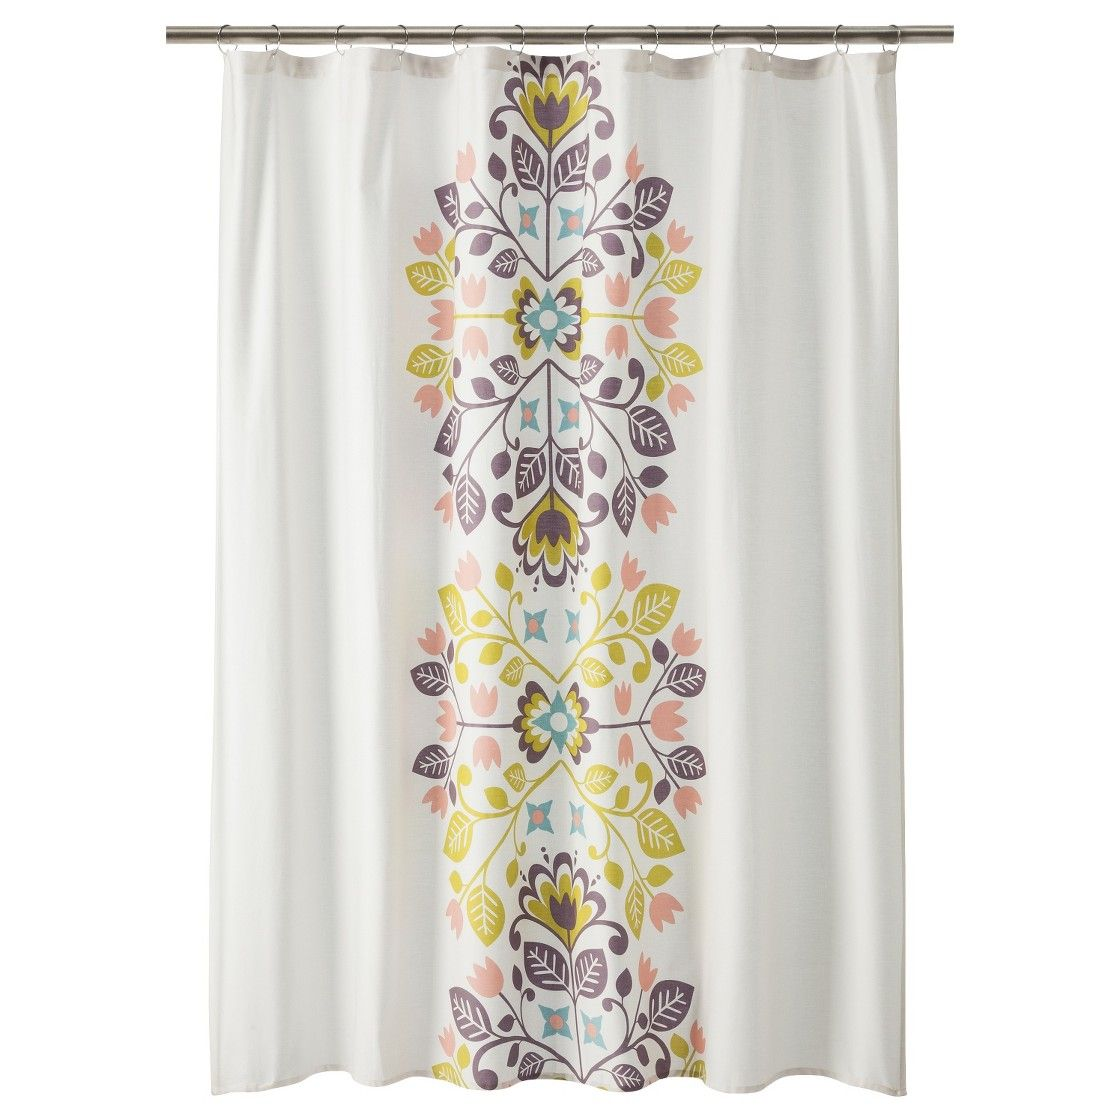 accessories beautiful bewitch bathroom valance full stunning horrifying country and custom window elegant croscill cool sale shower into curtain breathtaking fabric inviting matching valances curtains drapes size ideas plan for of